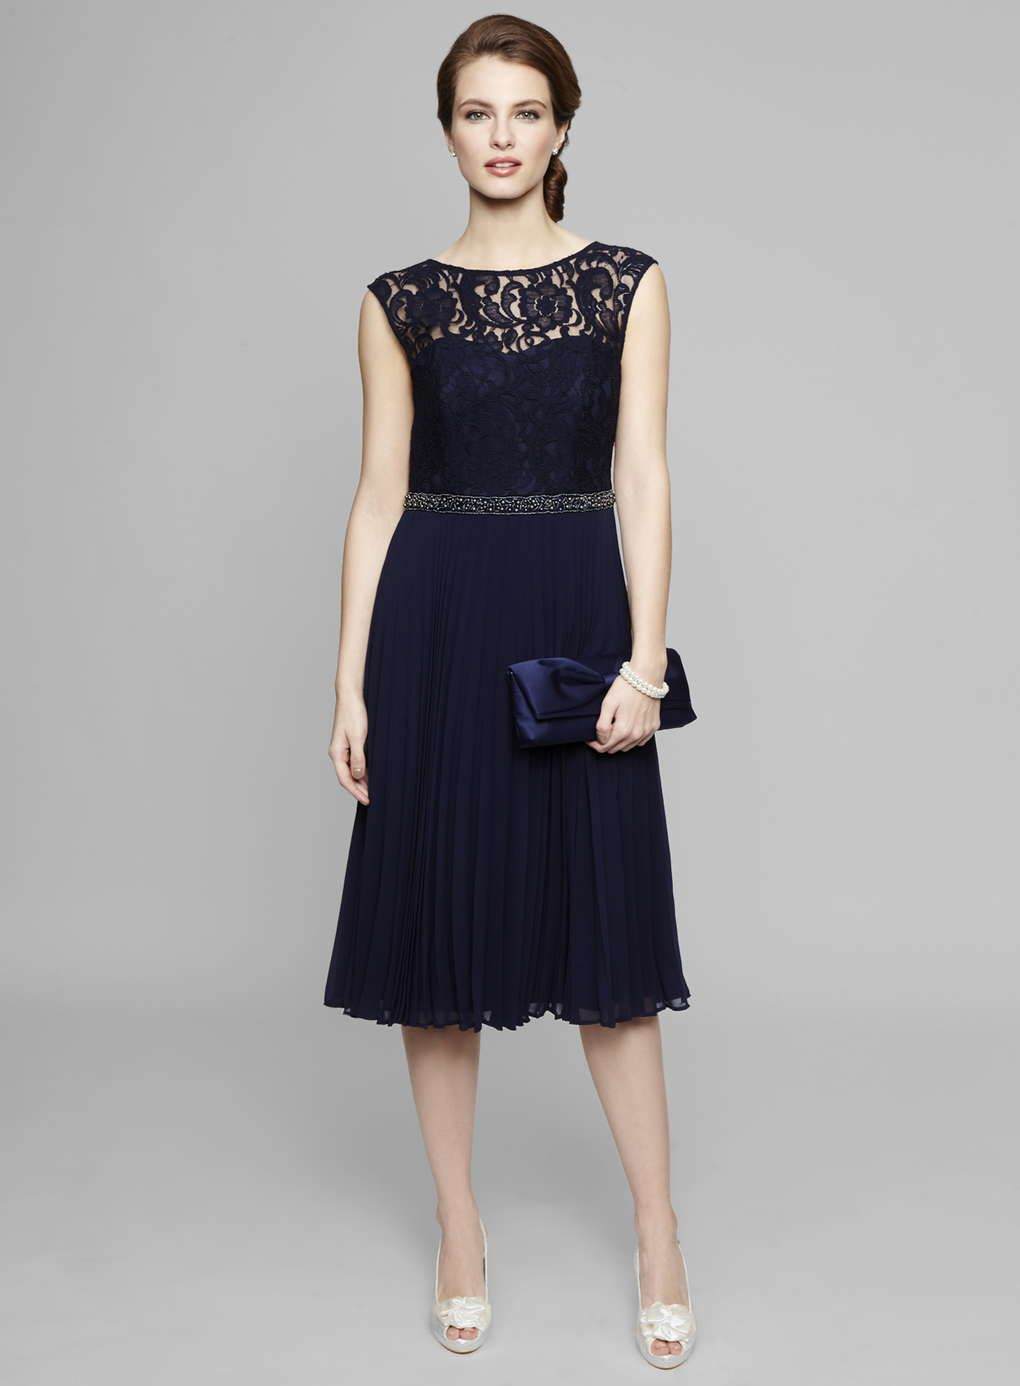 Navy louisa lace pleat bridemaids dress bhs caz wedding ideas